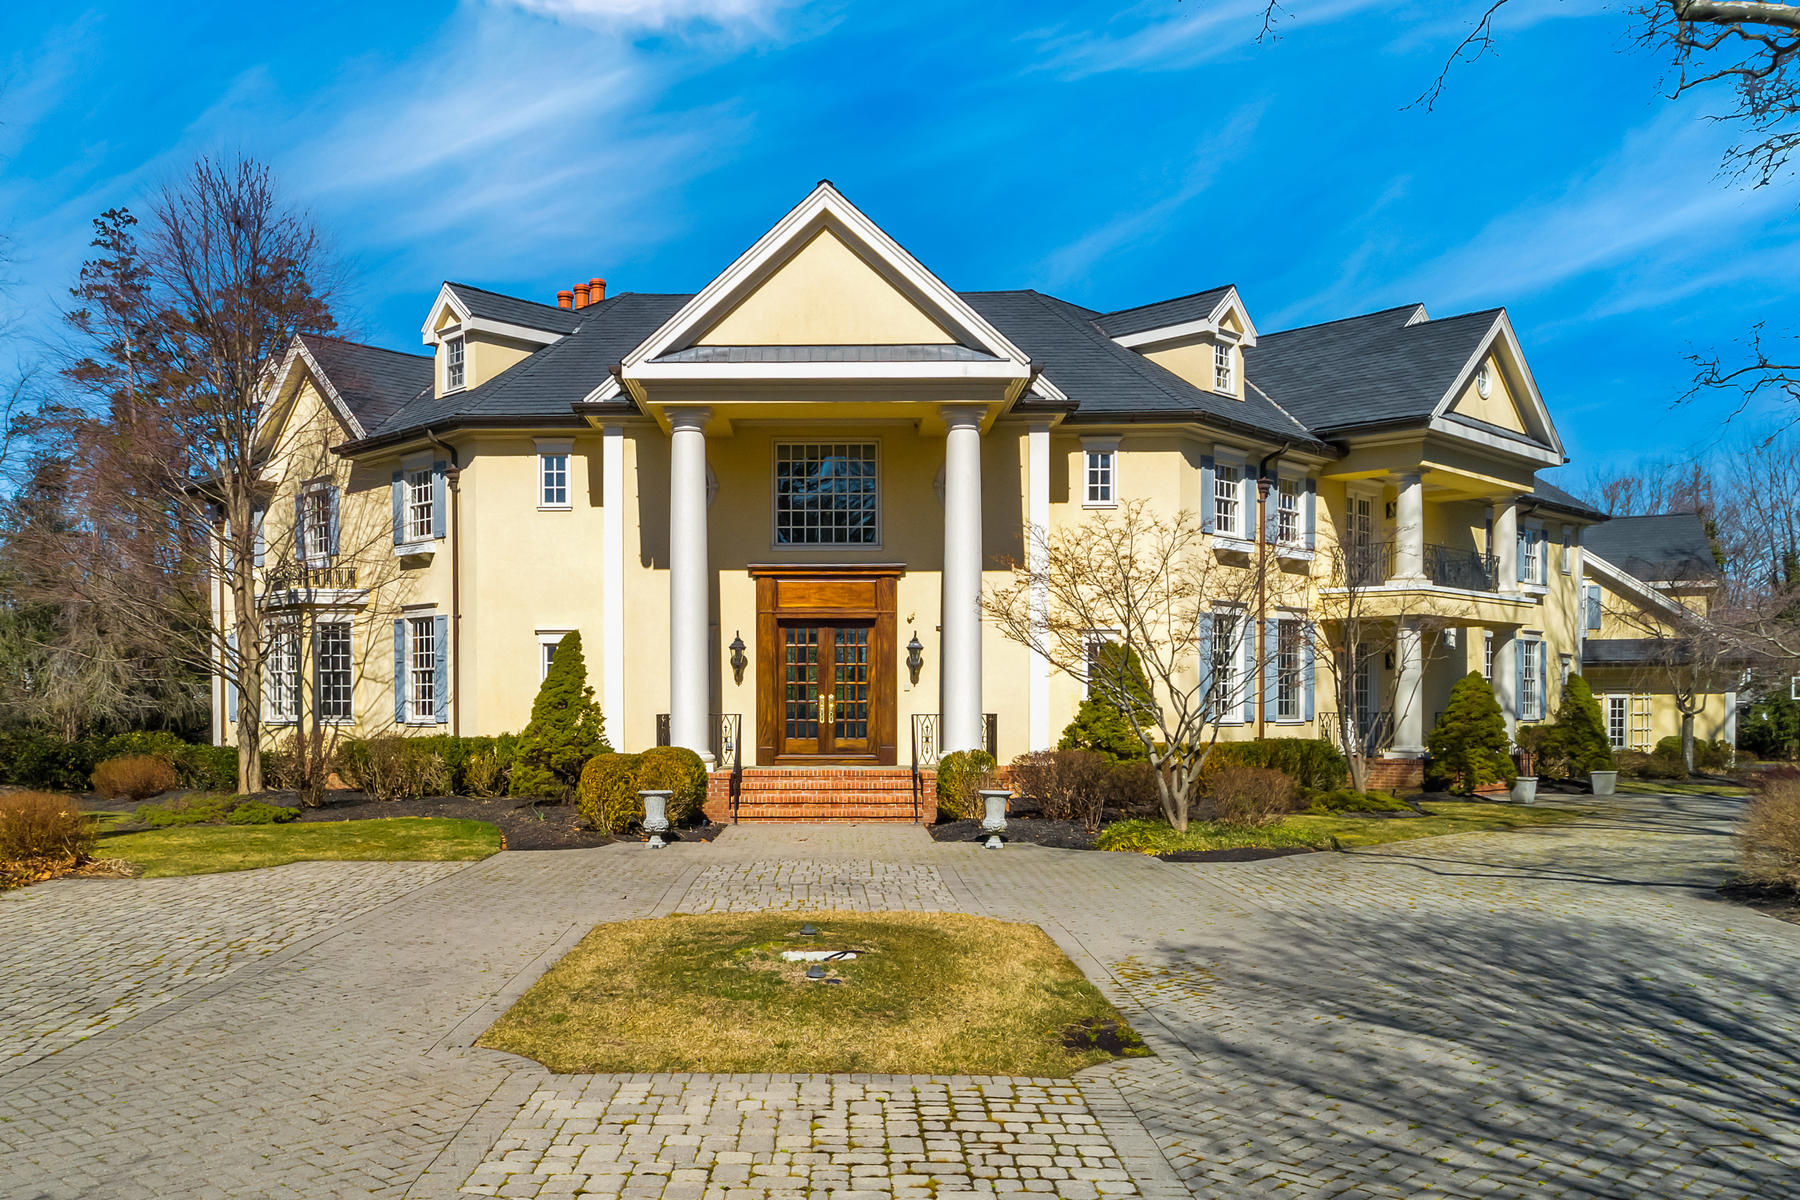 Single Family Homes for Sale at Grandeur Embodied 10 Belknap Lane Rumson, New Jersey 07760 United States